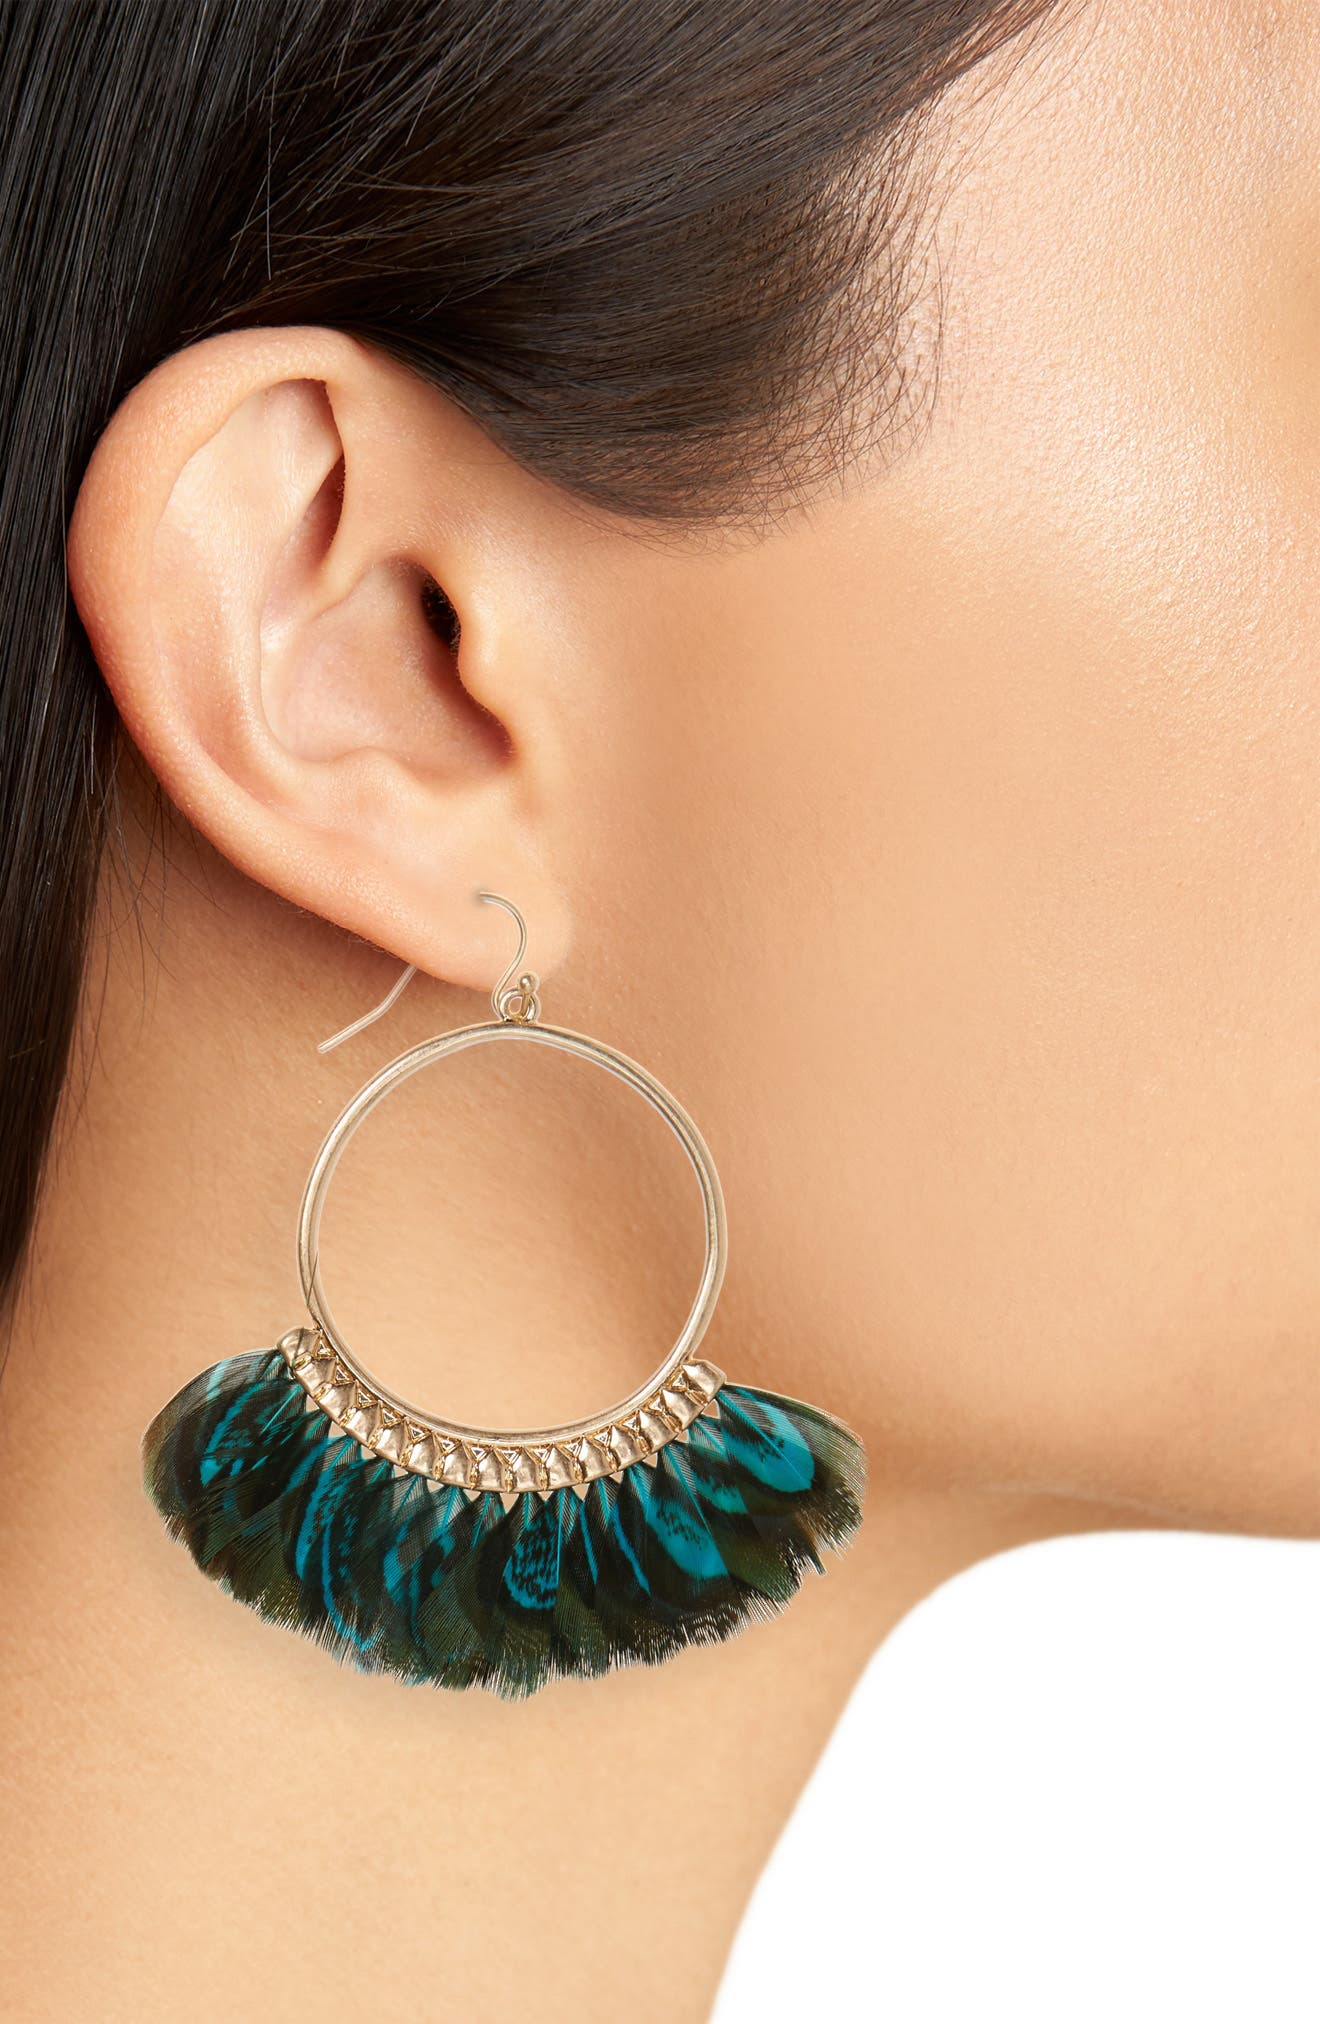 Feather Hoop Earrings,                             Alternate thumbnail 2, color,                             Black/ Teal